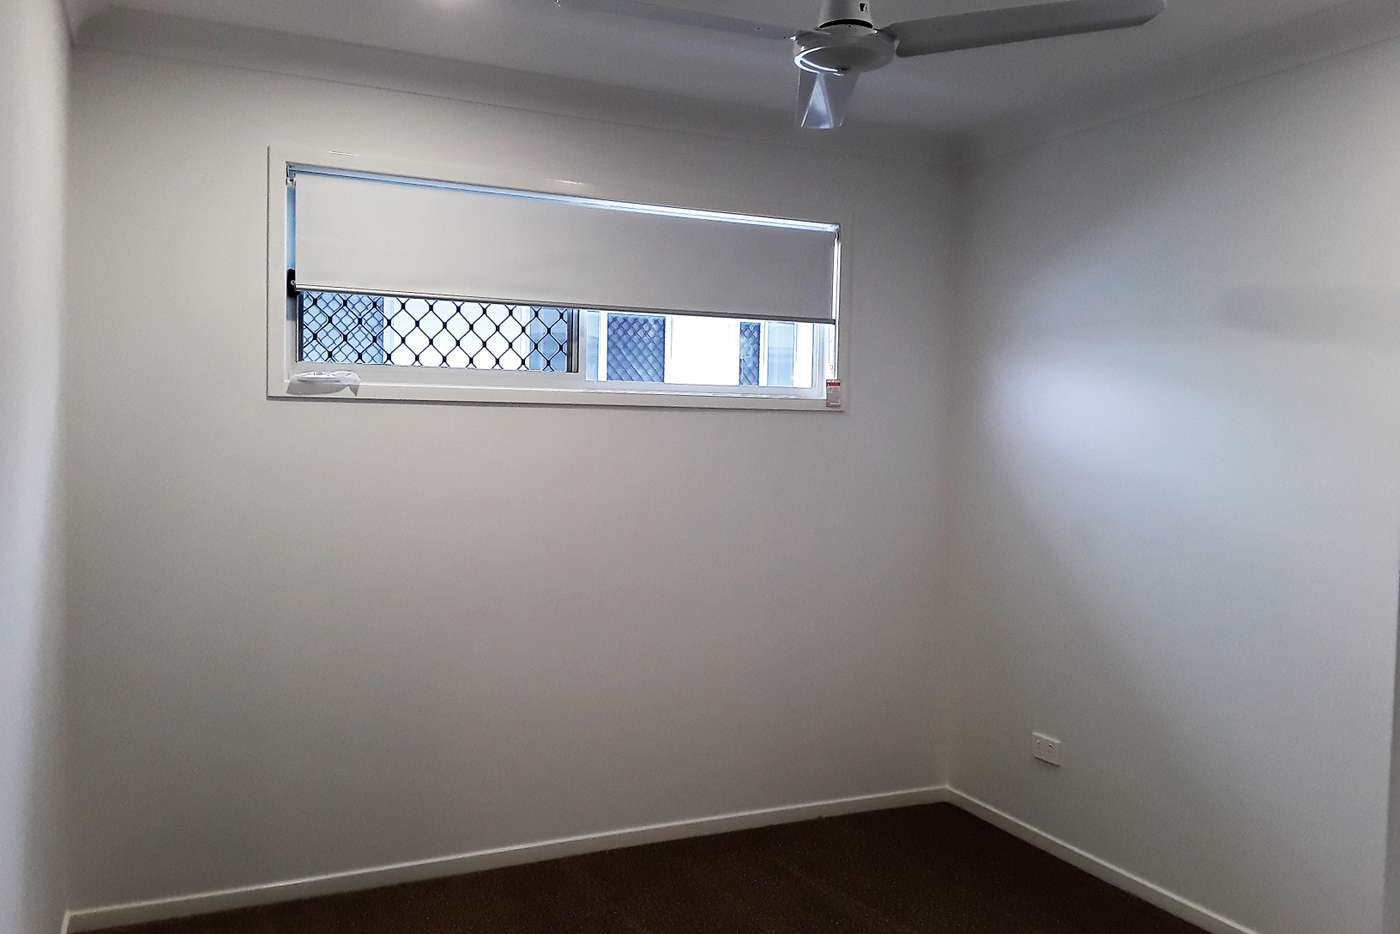 Seventh view of Homely house listing, 45 Brindabella Street, Newport QLD 4020